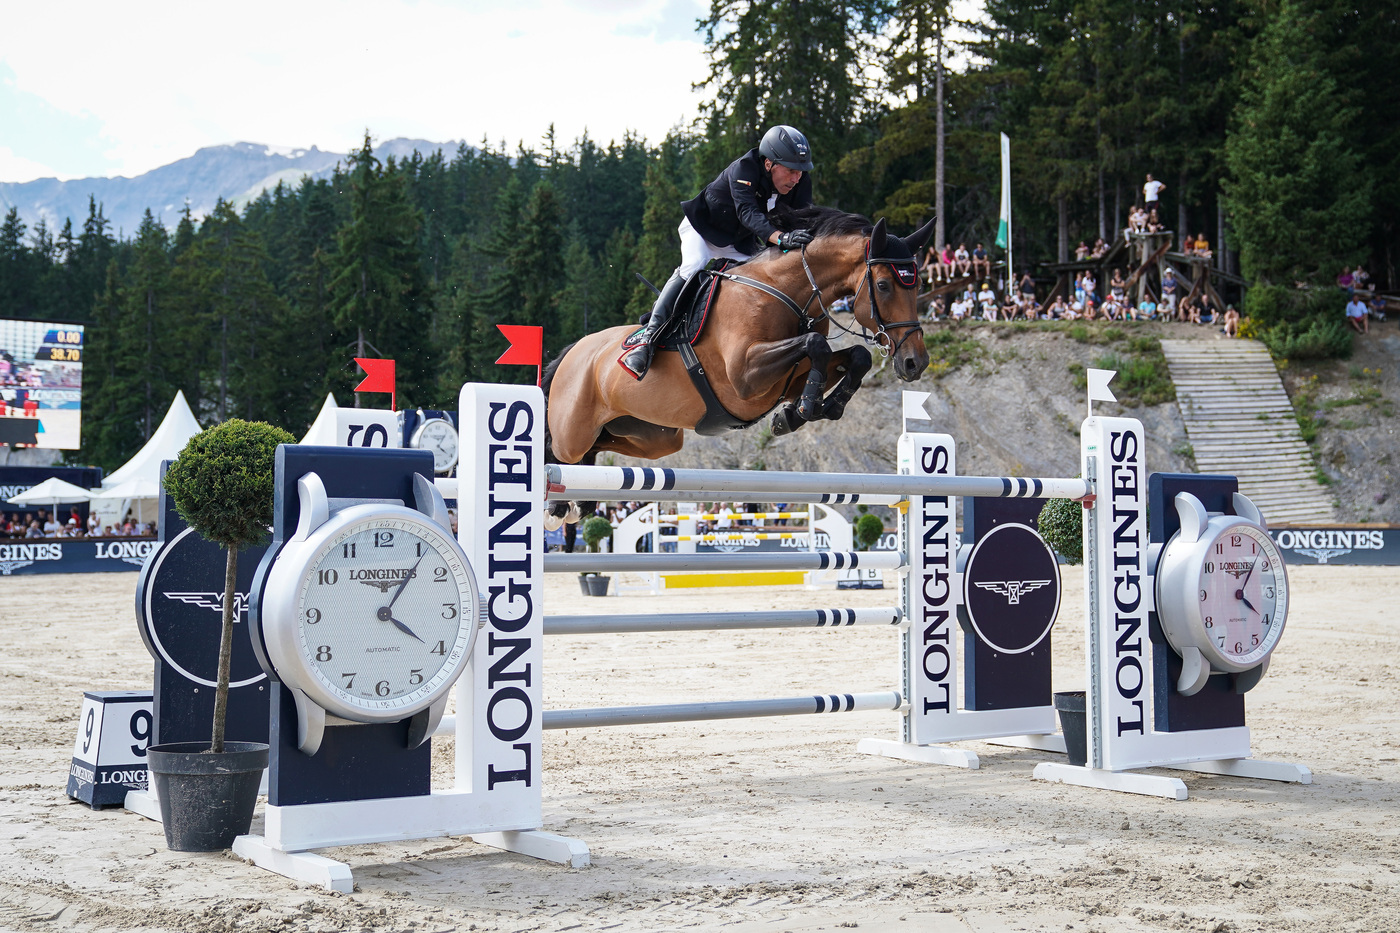 Longines Show Jumping Event: After four days of captivating competitions, Piergiorgio Bucci (ITA) won the Grand Prix Longines in Crans-Montana 4